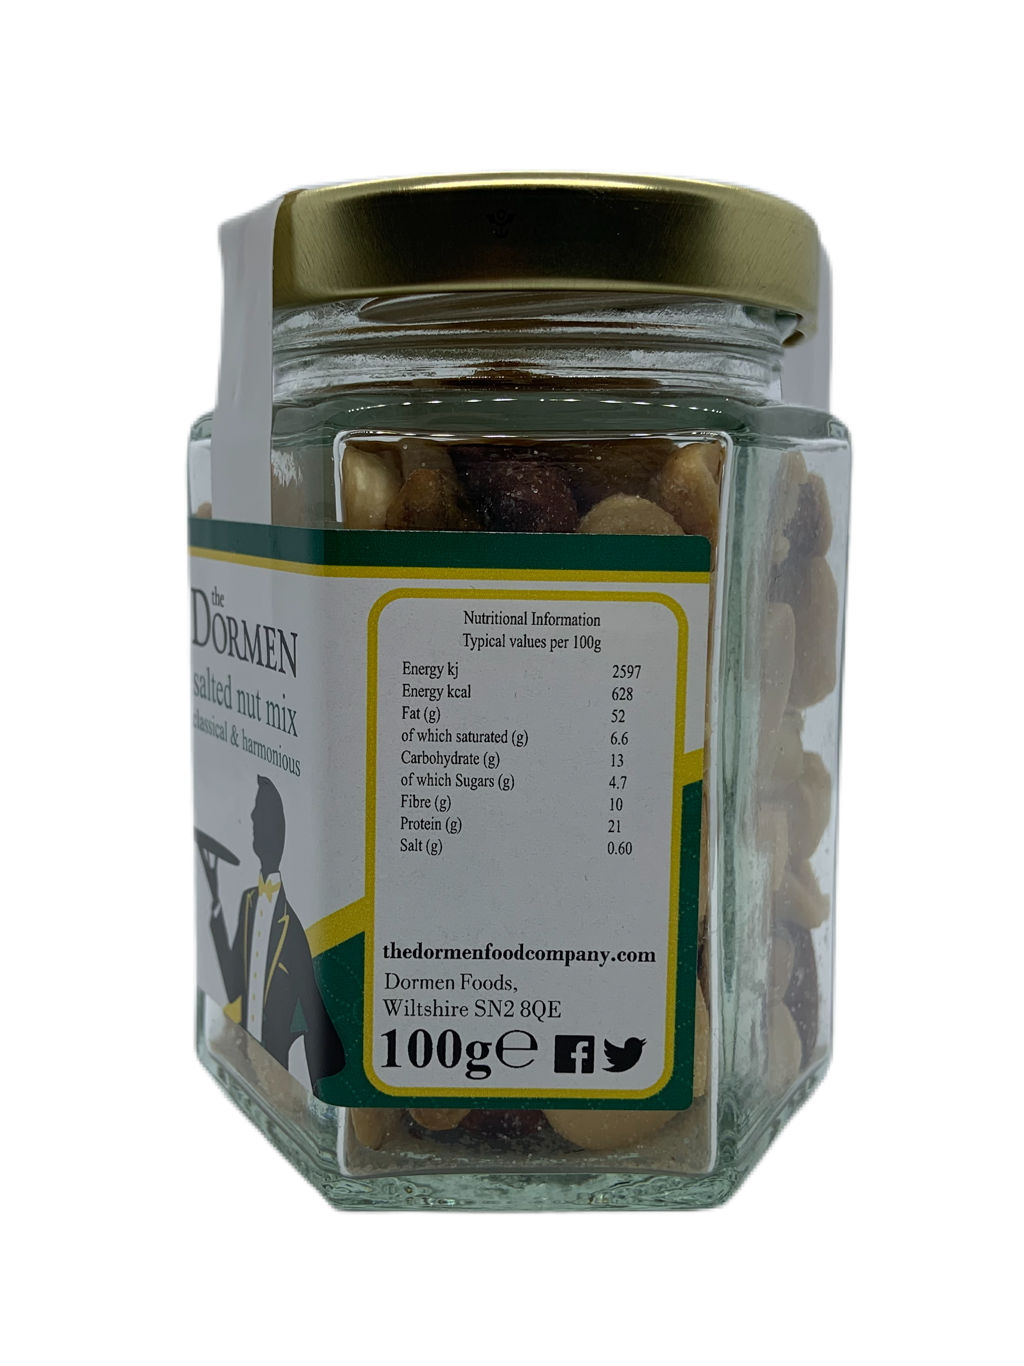 Salted Nut Mix Hexagonal Jar - The Dormen Food Company